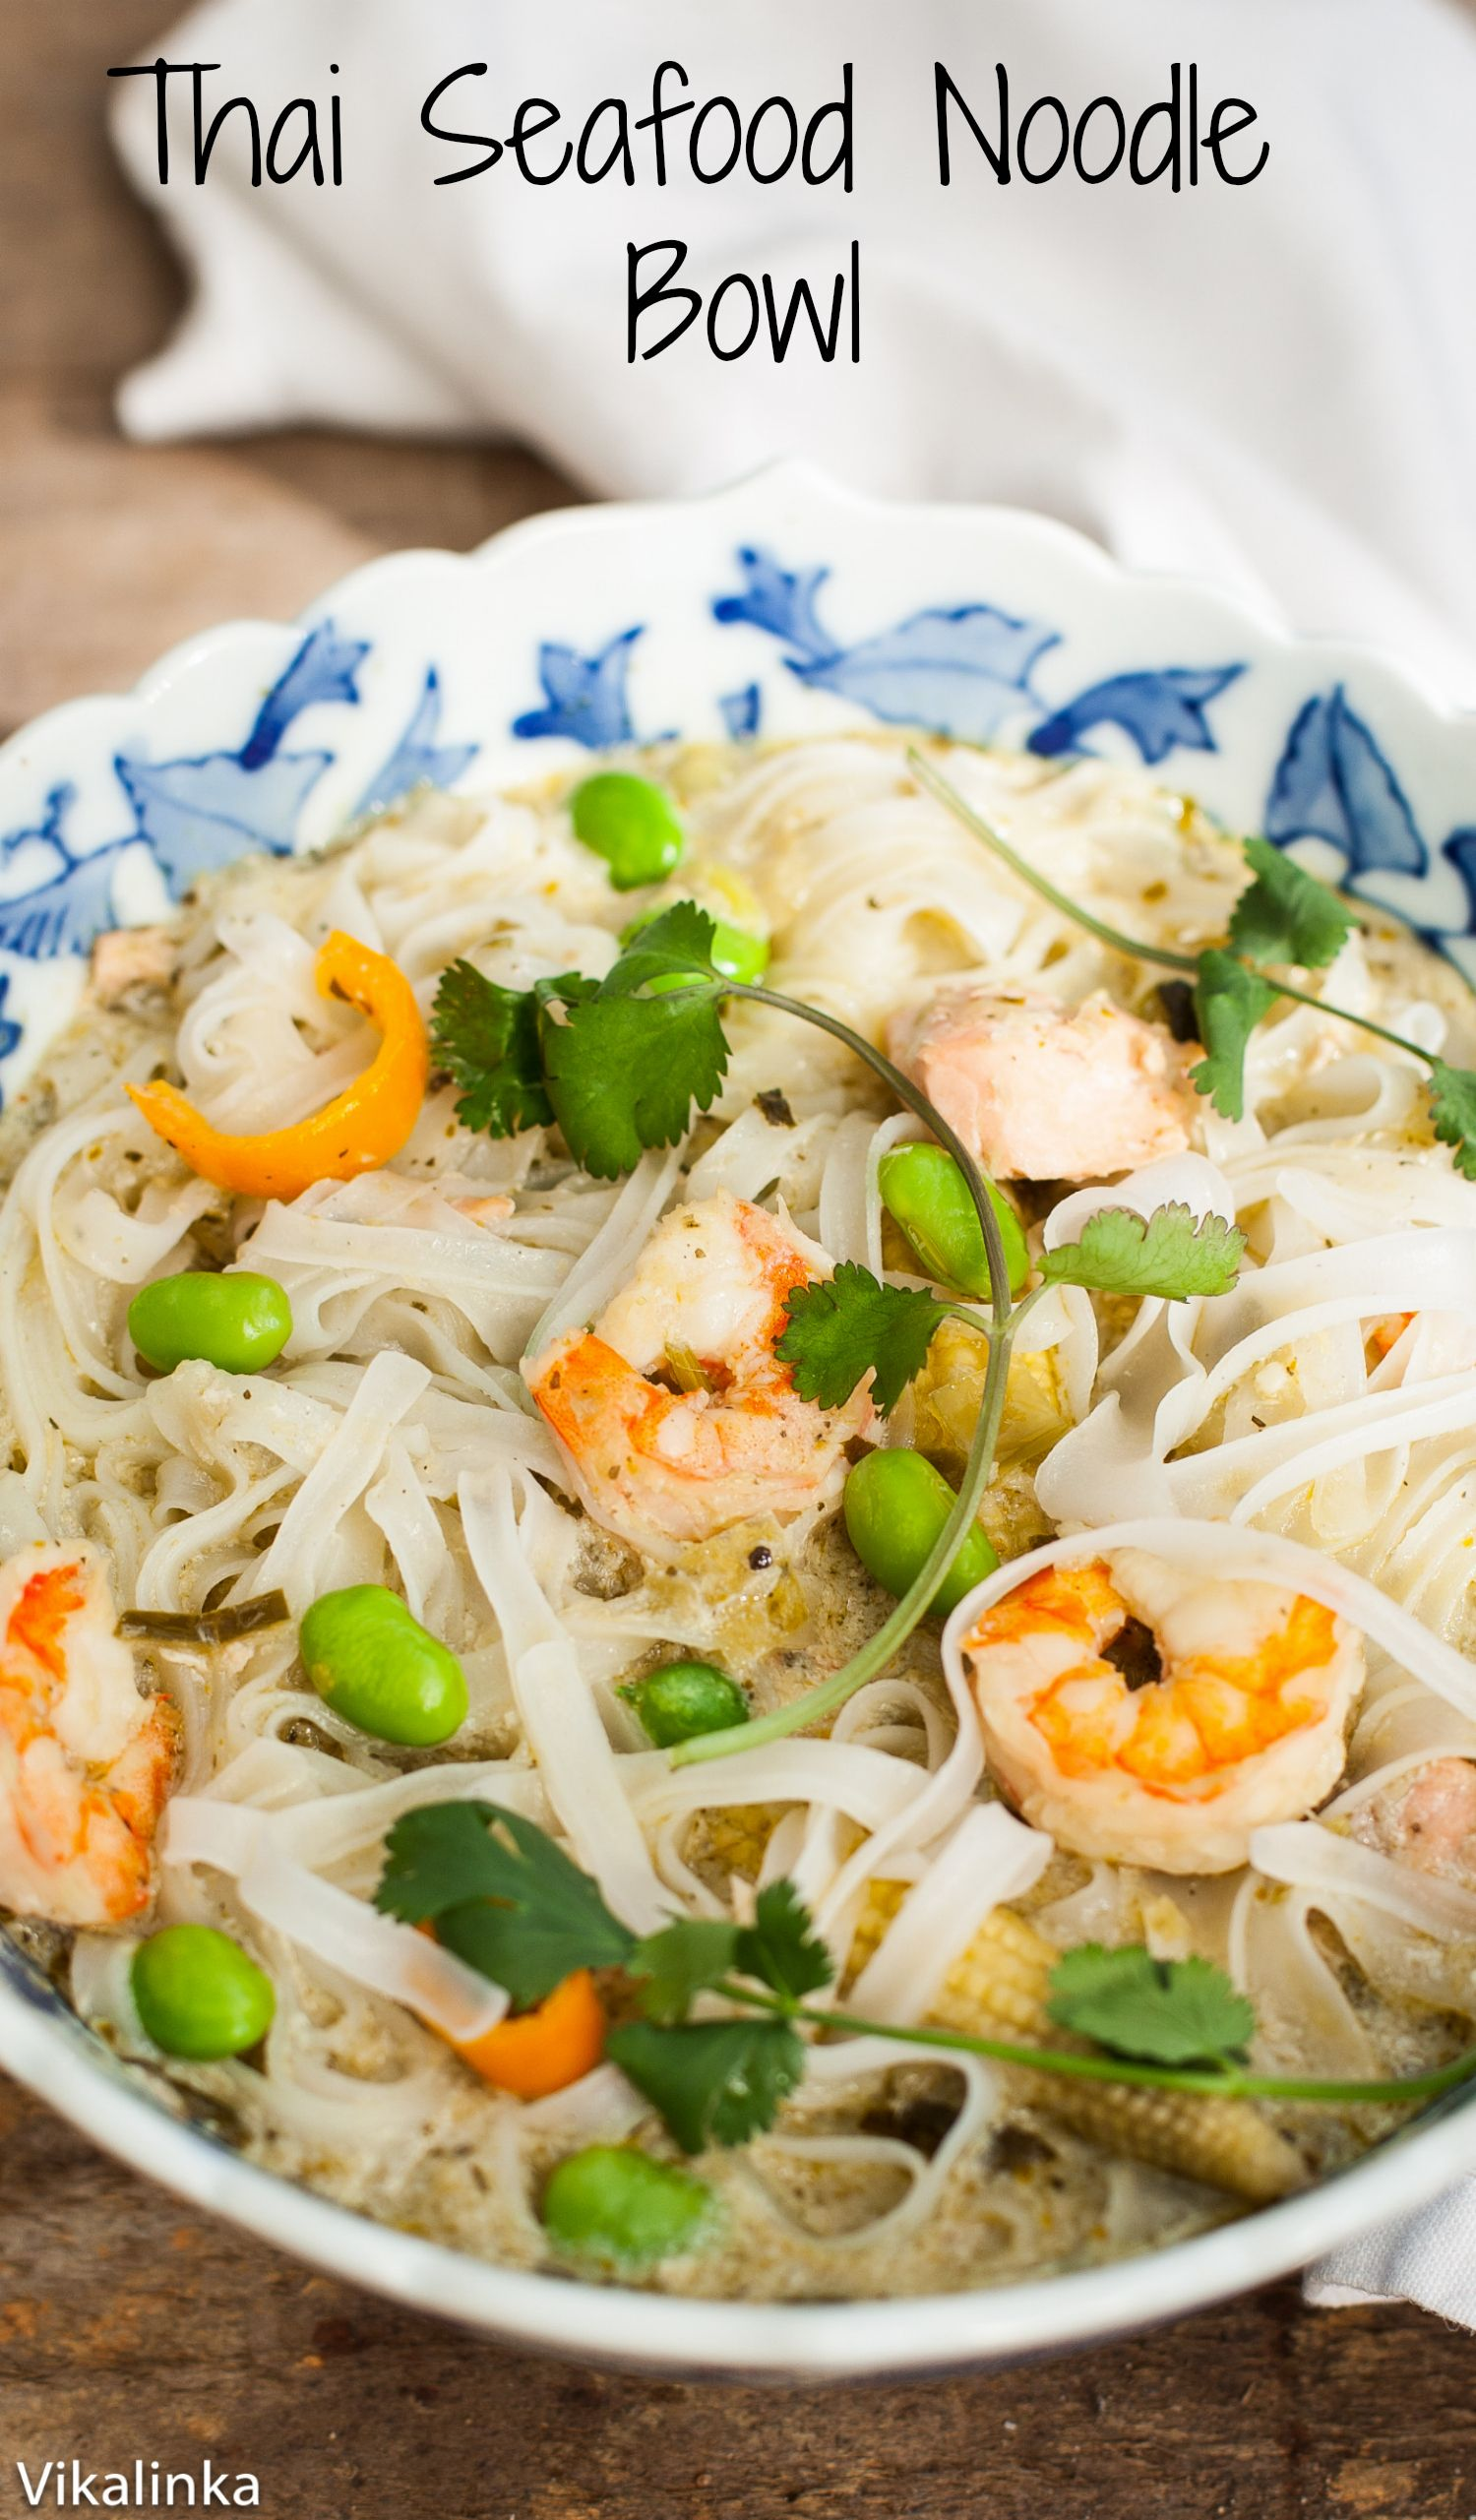 If you are a Thai food lover this Thai seafood noodle bowl is for you- warm, slightly spicy and comforting that comes together in 20 minutes.